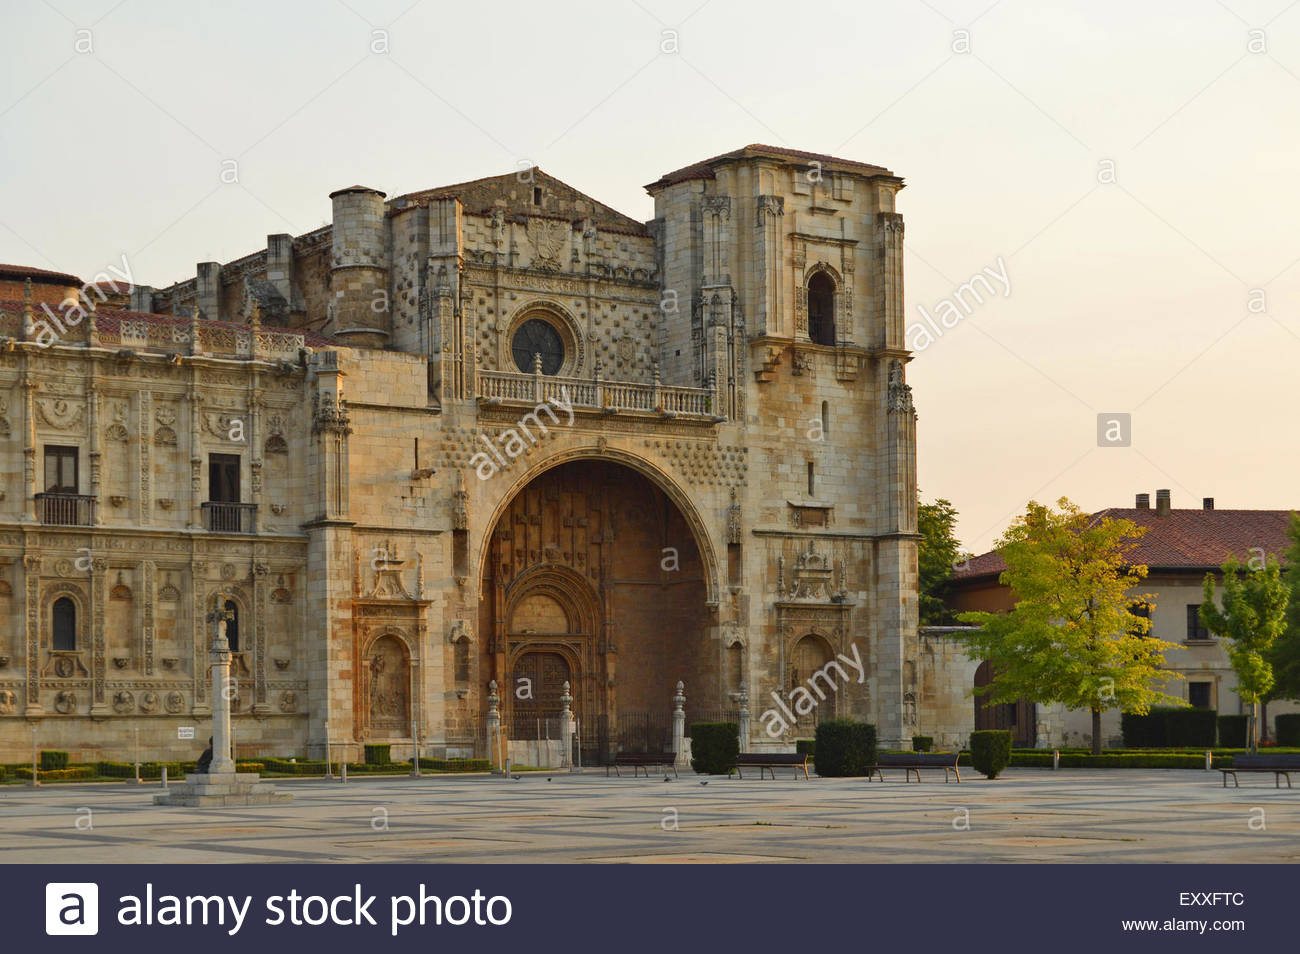 San Marcos Cathedral Stock Photos & San Marcos Cathedral Stock ...